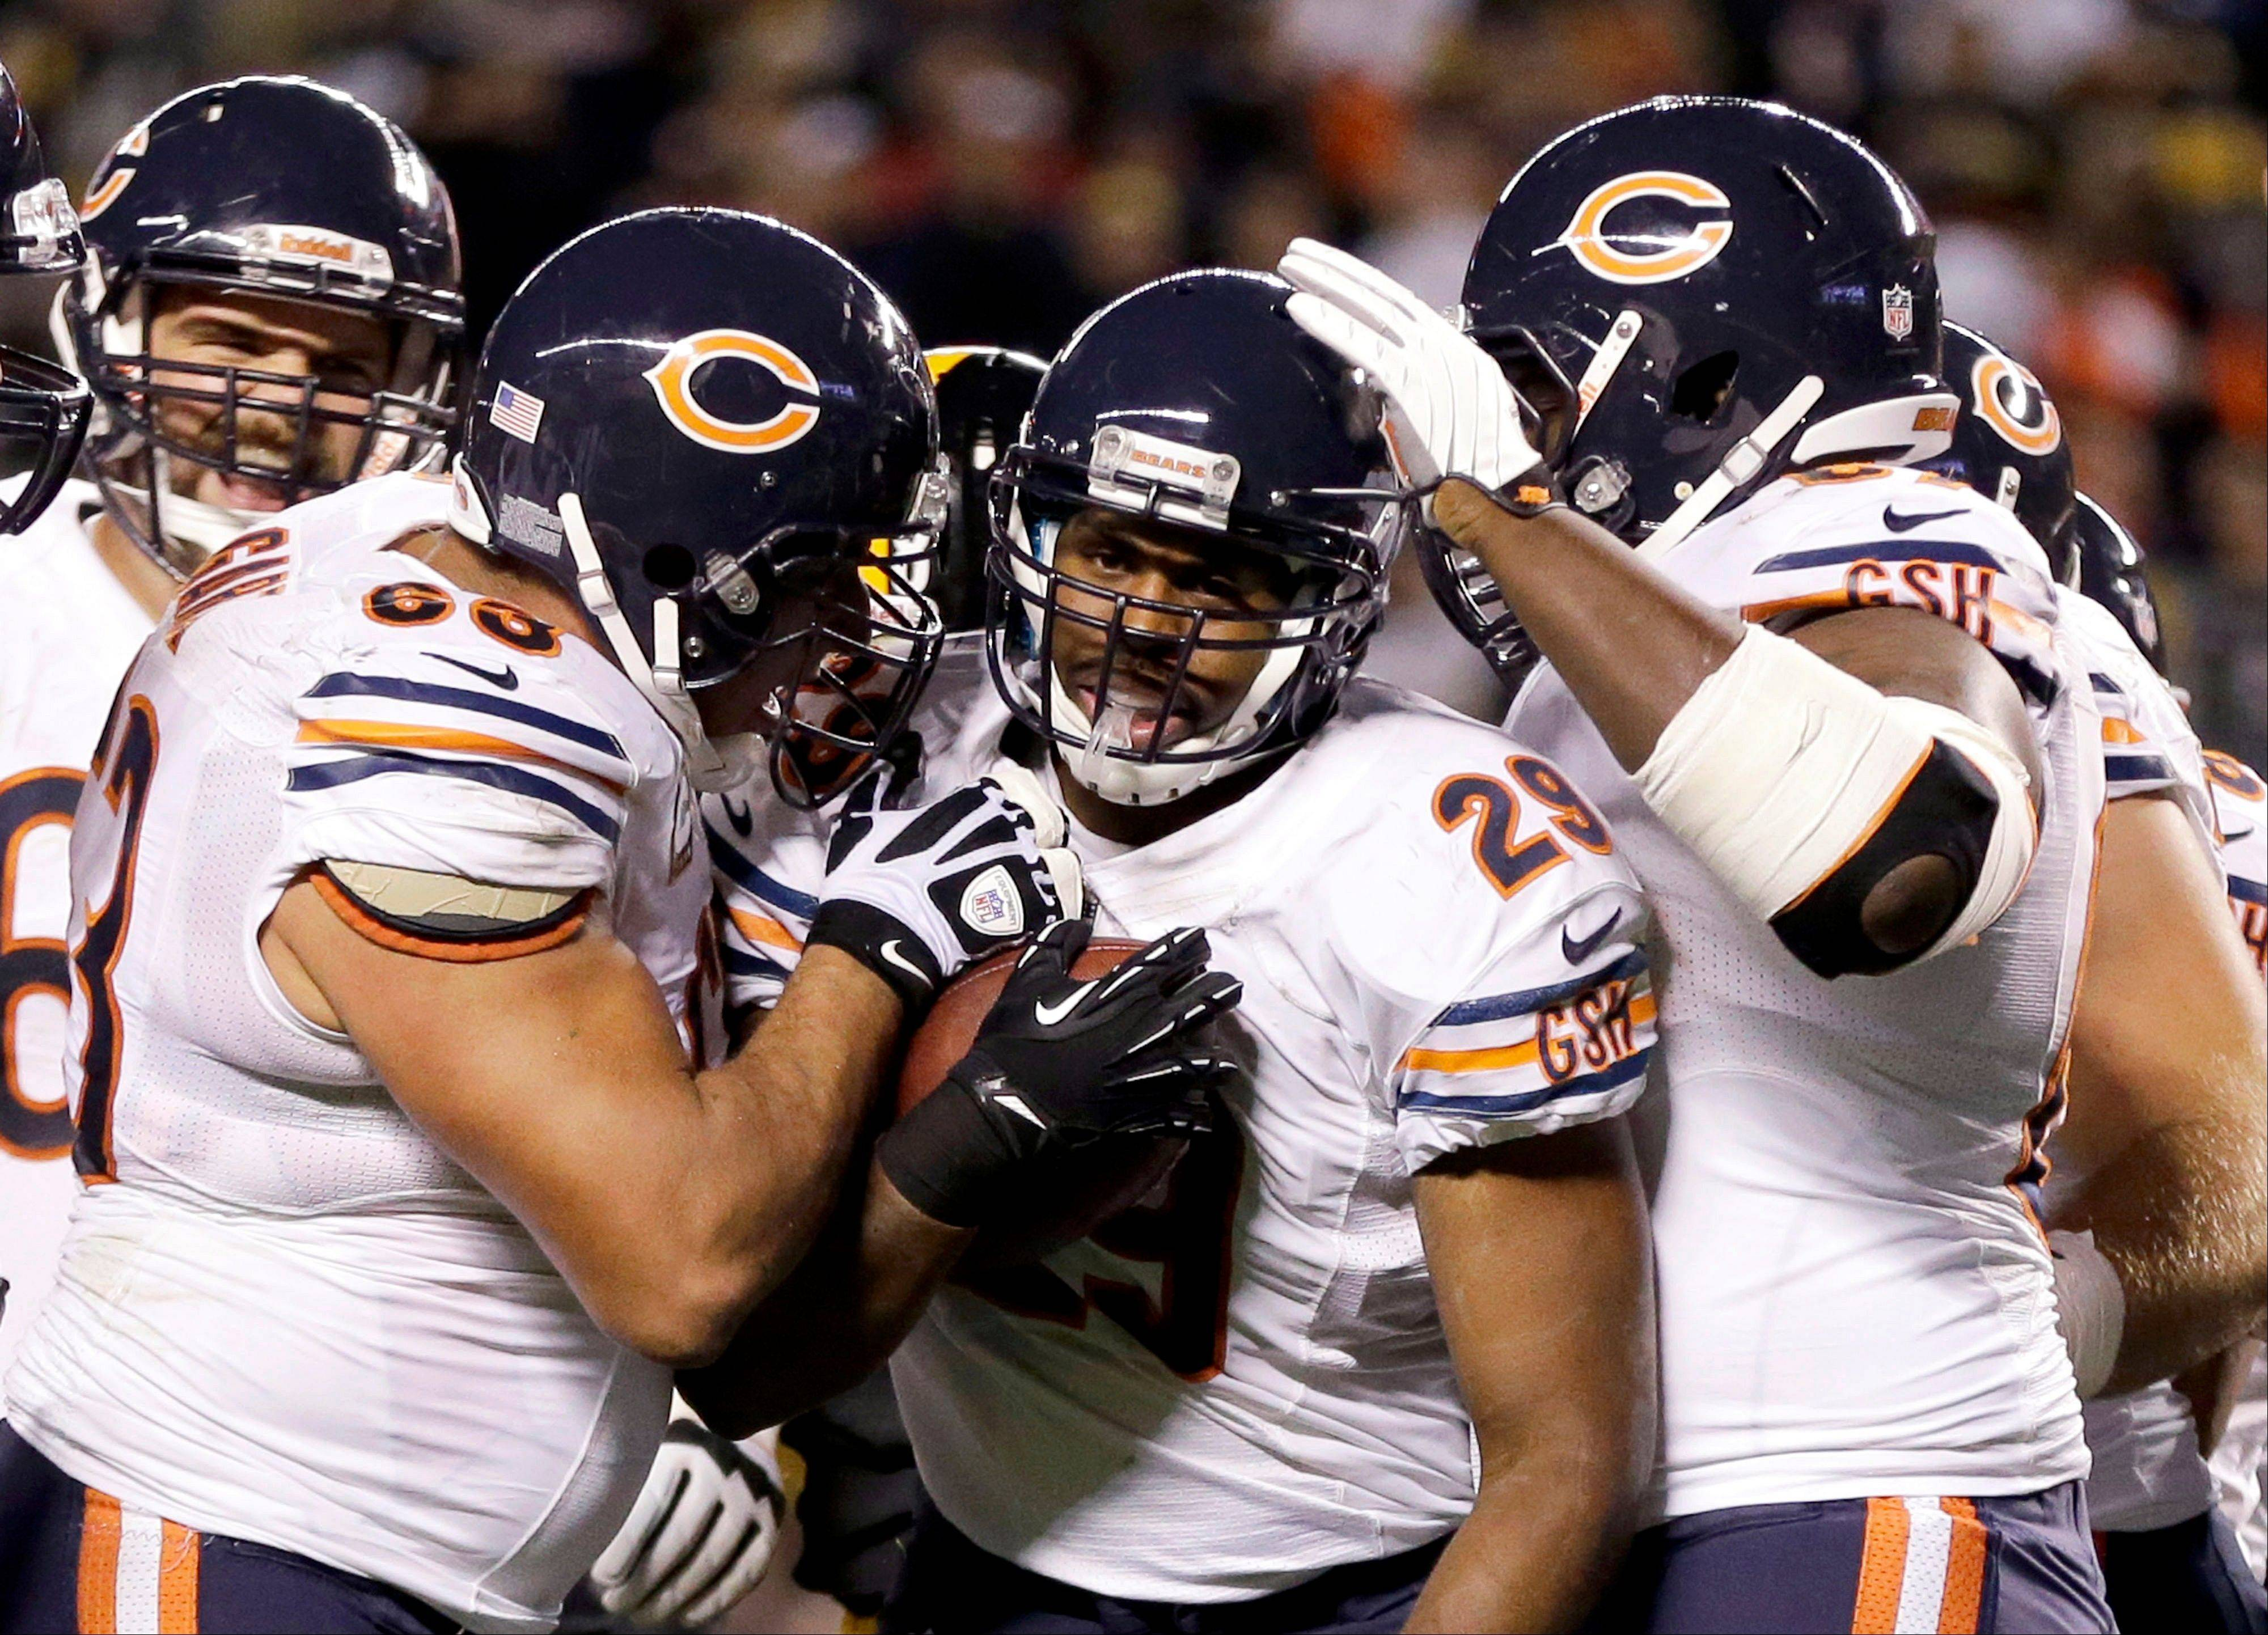 Chicago Bears running back Michael Bush celebrates scoring a touchdown with teammates in the first quarter of an NFL football game against the Pittsburgh Steelers in Pittsburgh, Sunday, Sept. 22, 2013